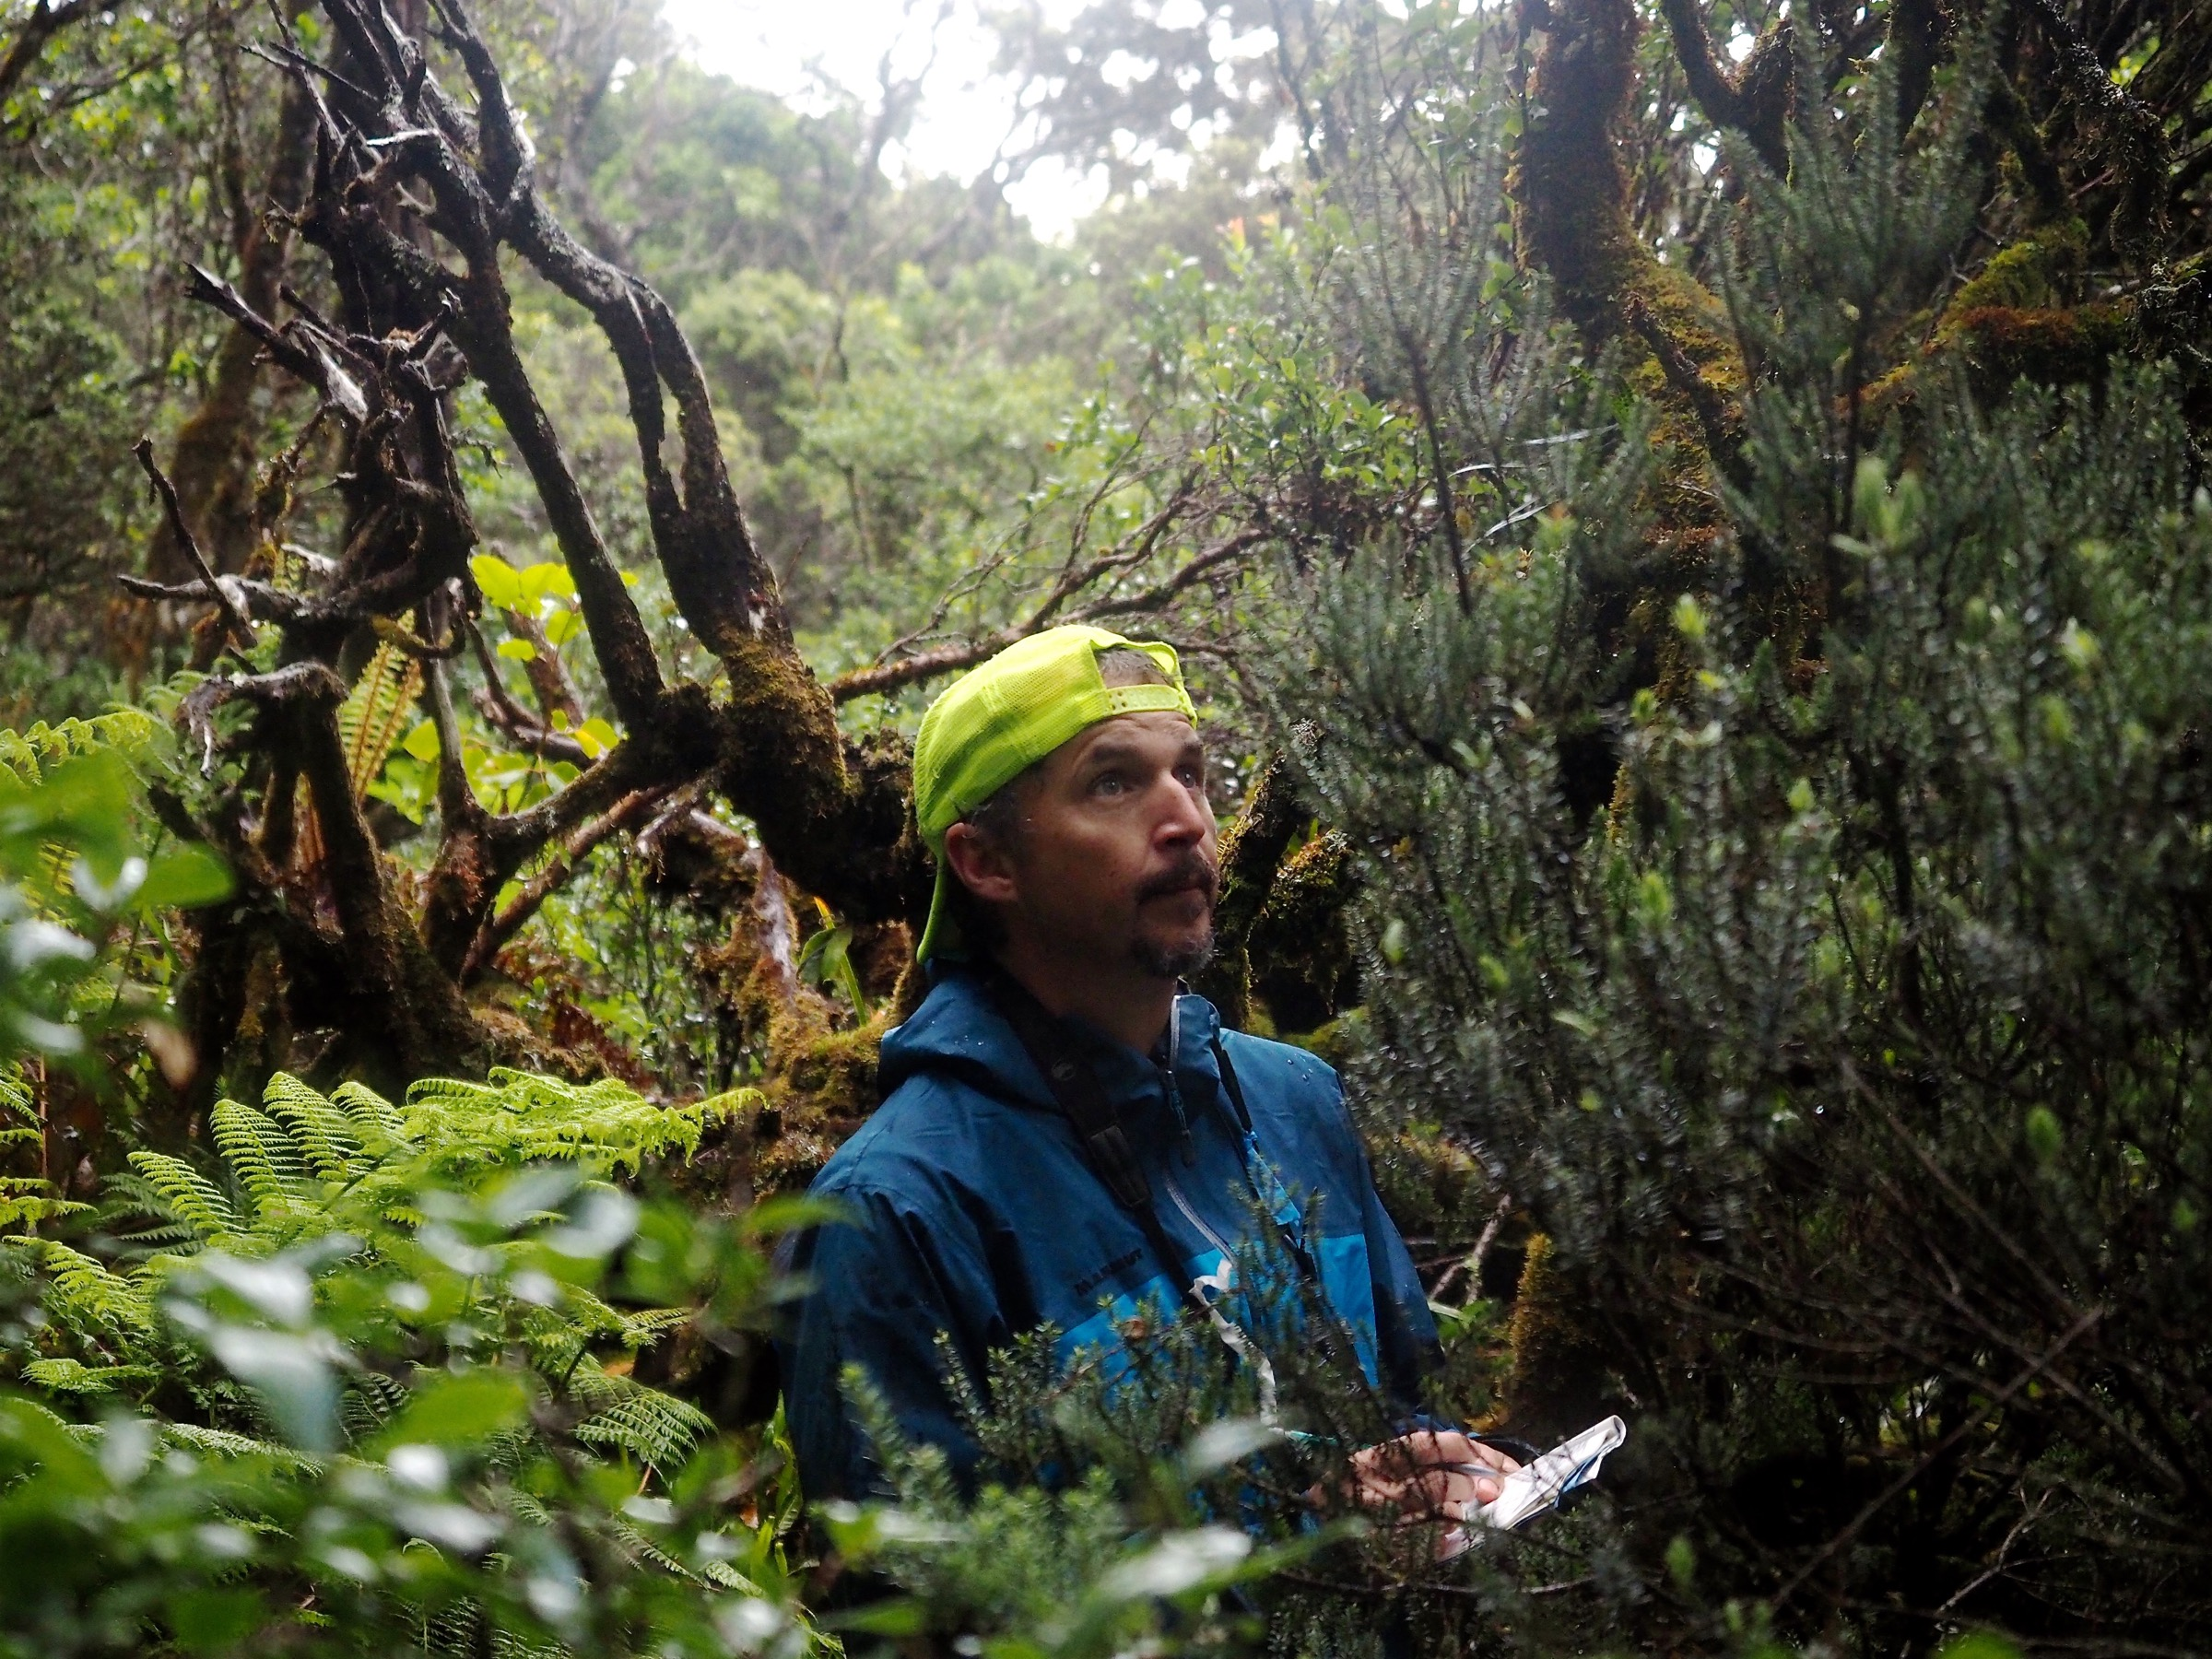 Seth Judge listens intently for bird calls during an 8-minute survey count. Photograph by Jeremy Miller